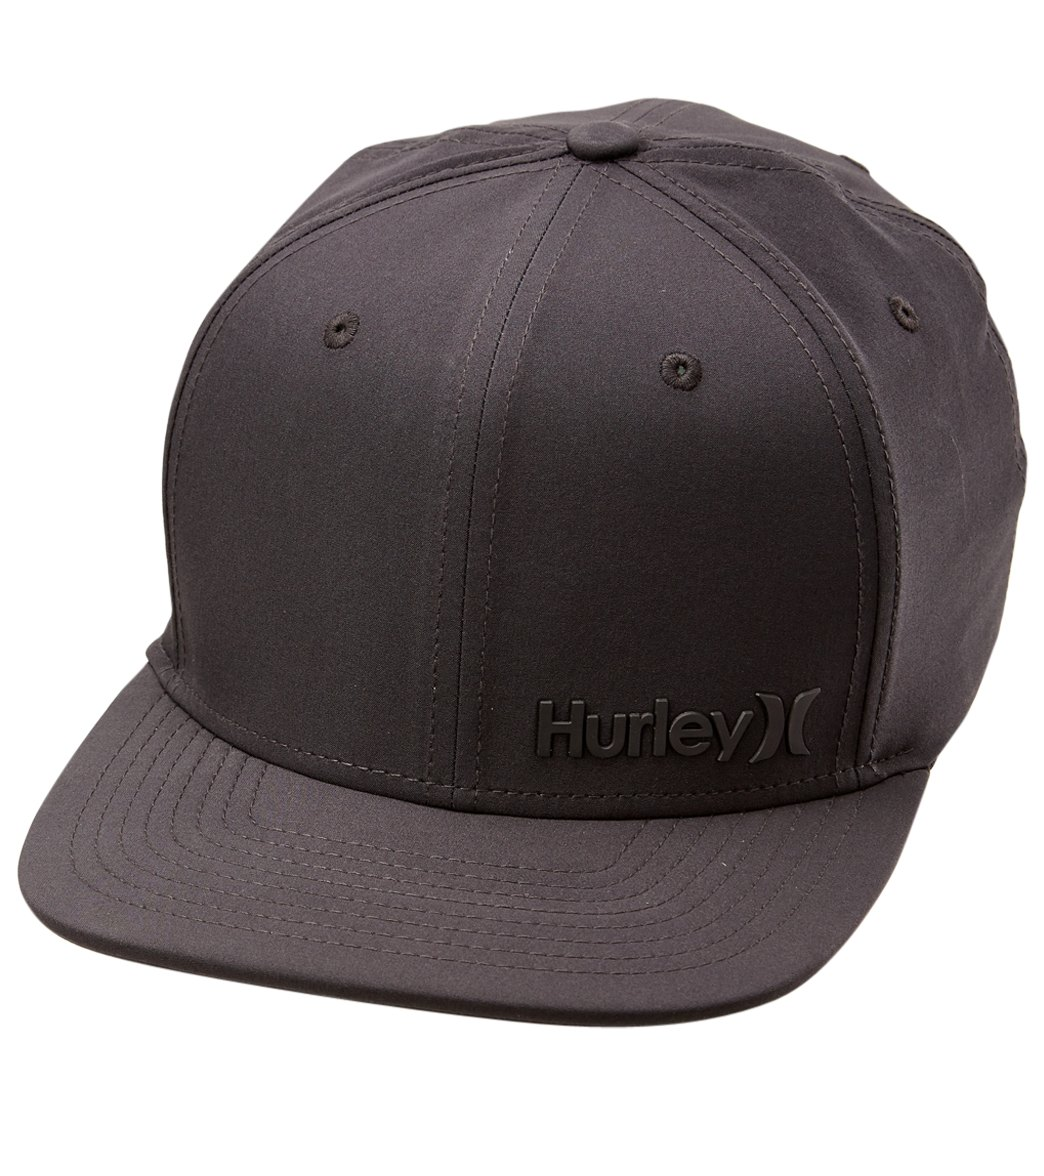 24178bff51b ... new zealand hurley mens phantom corp hat 7c2a8 4b7d4